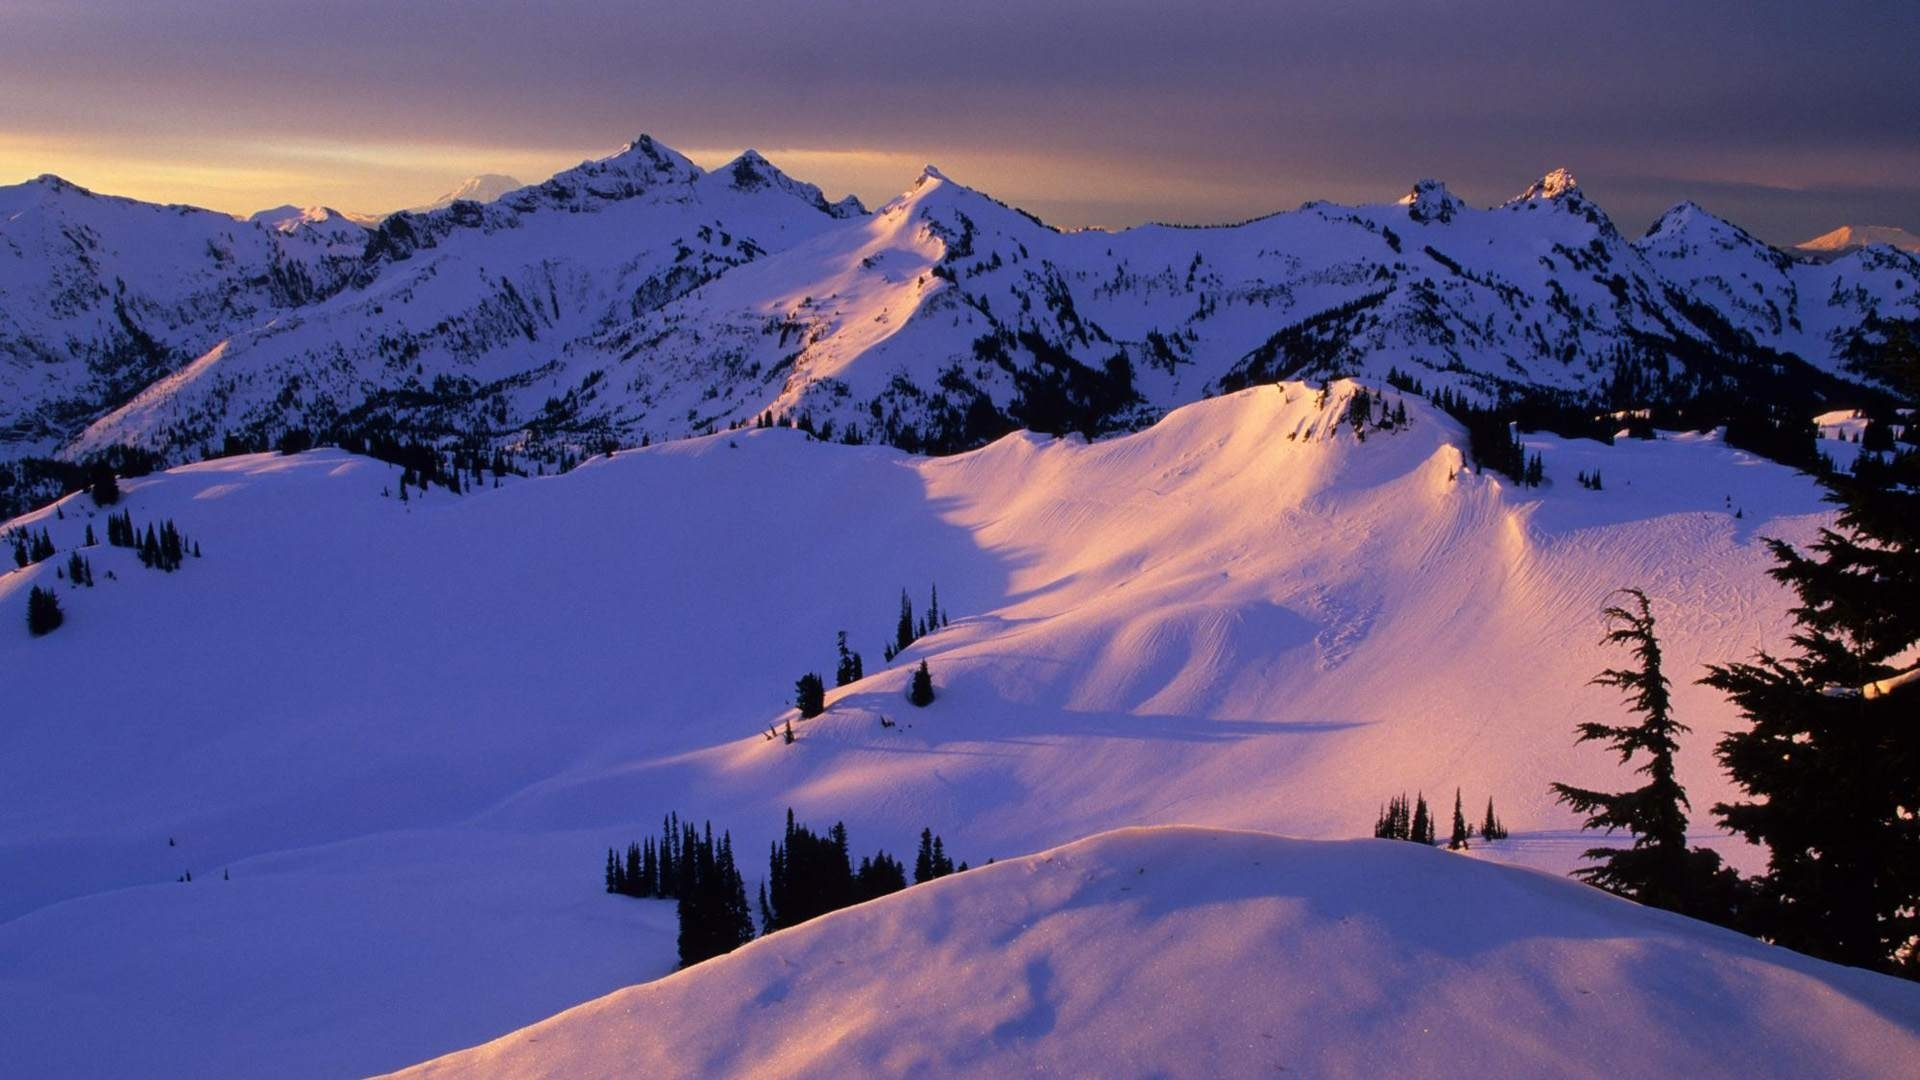 snow mountain wallpapers - wallpaper cave